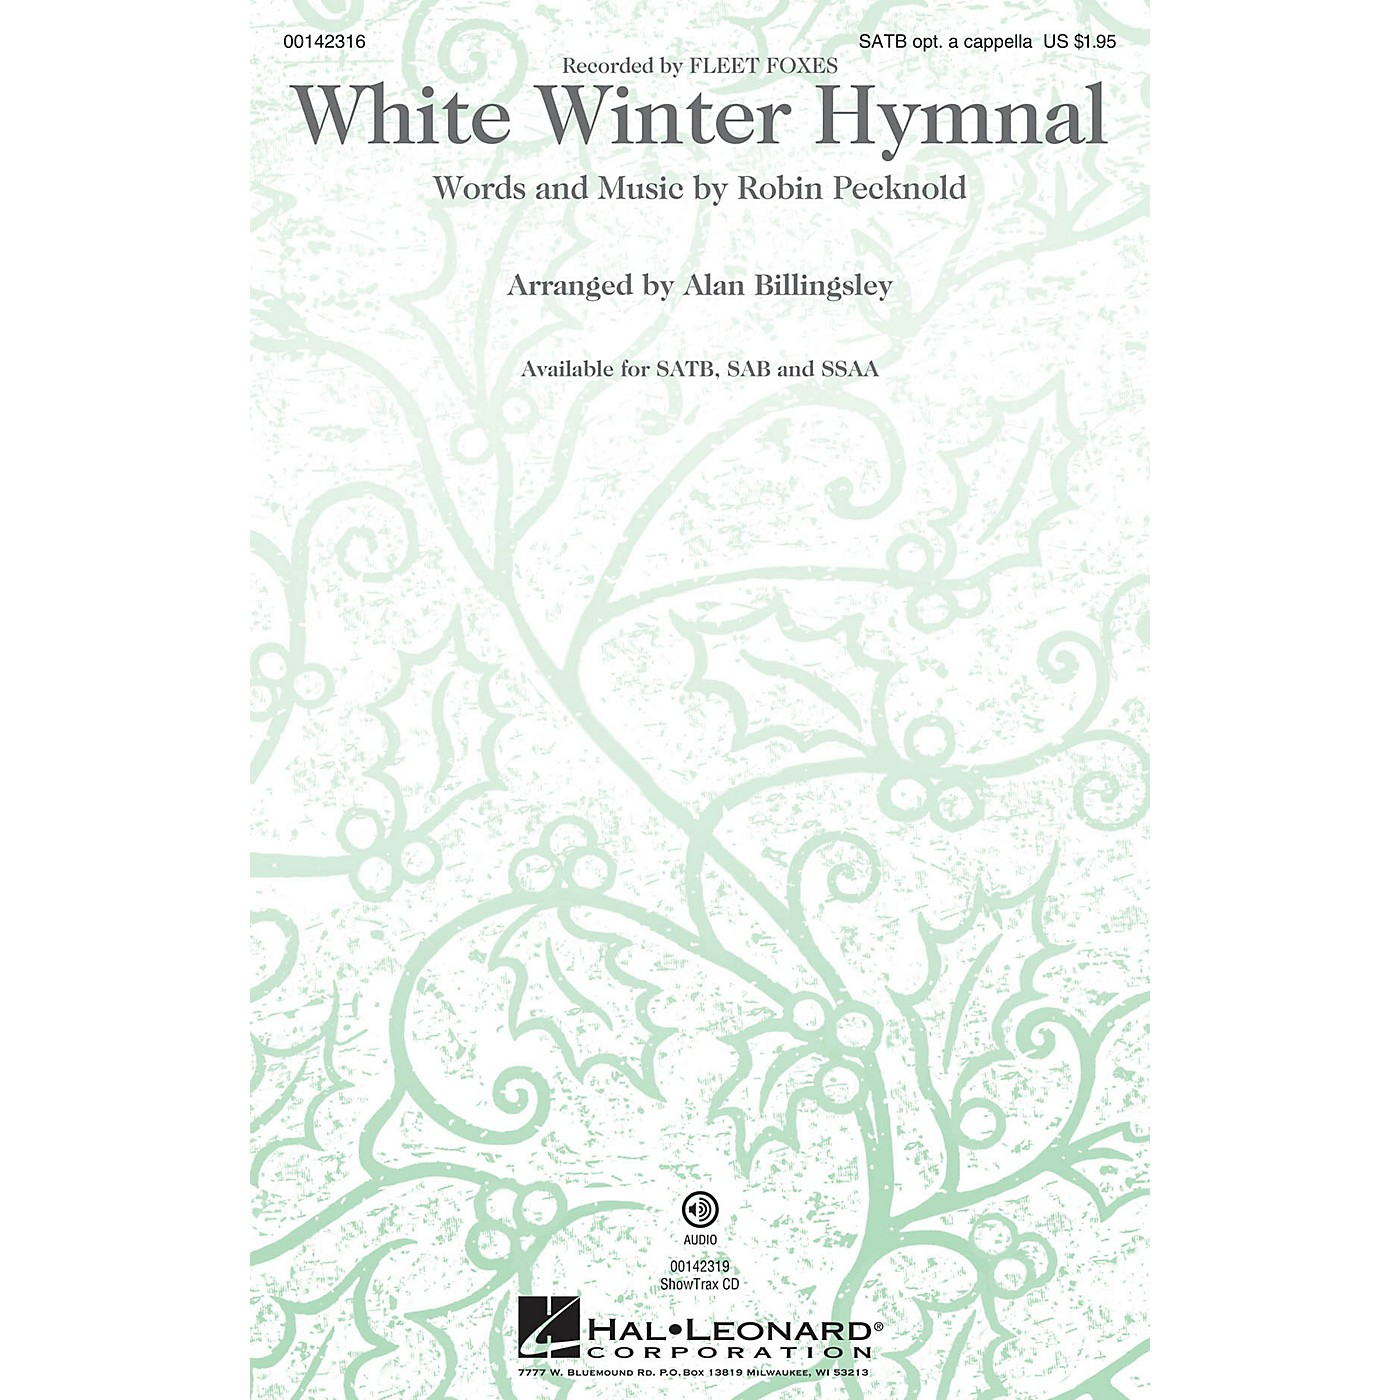 Hal Leonard White Winter Hymnal ShowTrax CD by Fleet Foxes Arranged by Alan Billingsley thumbnail